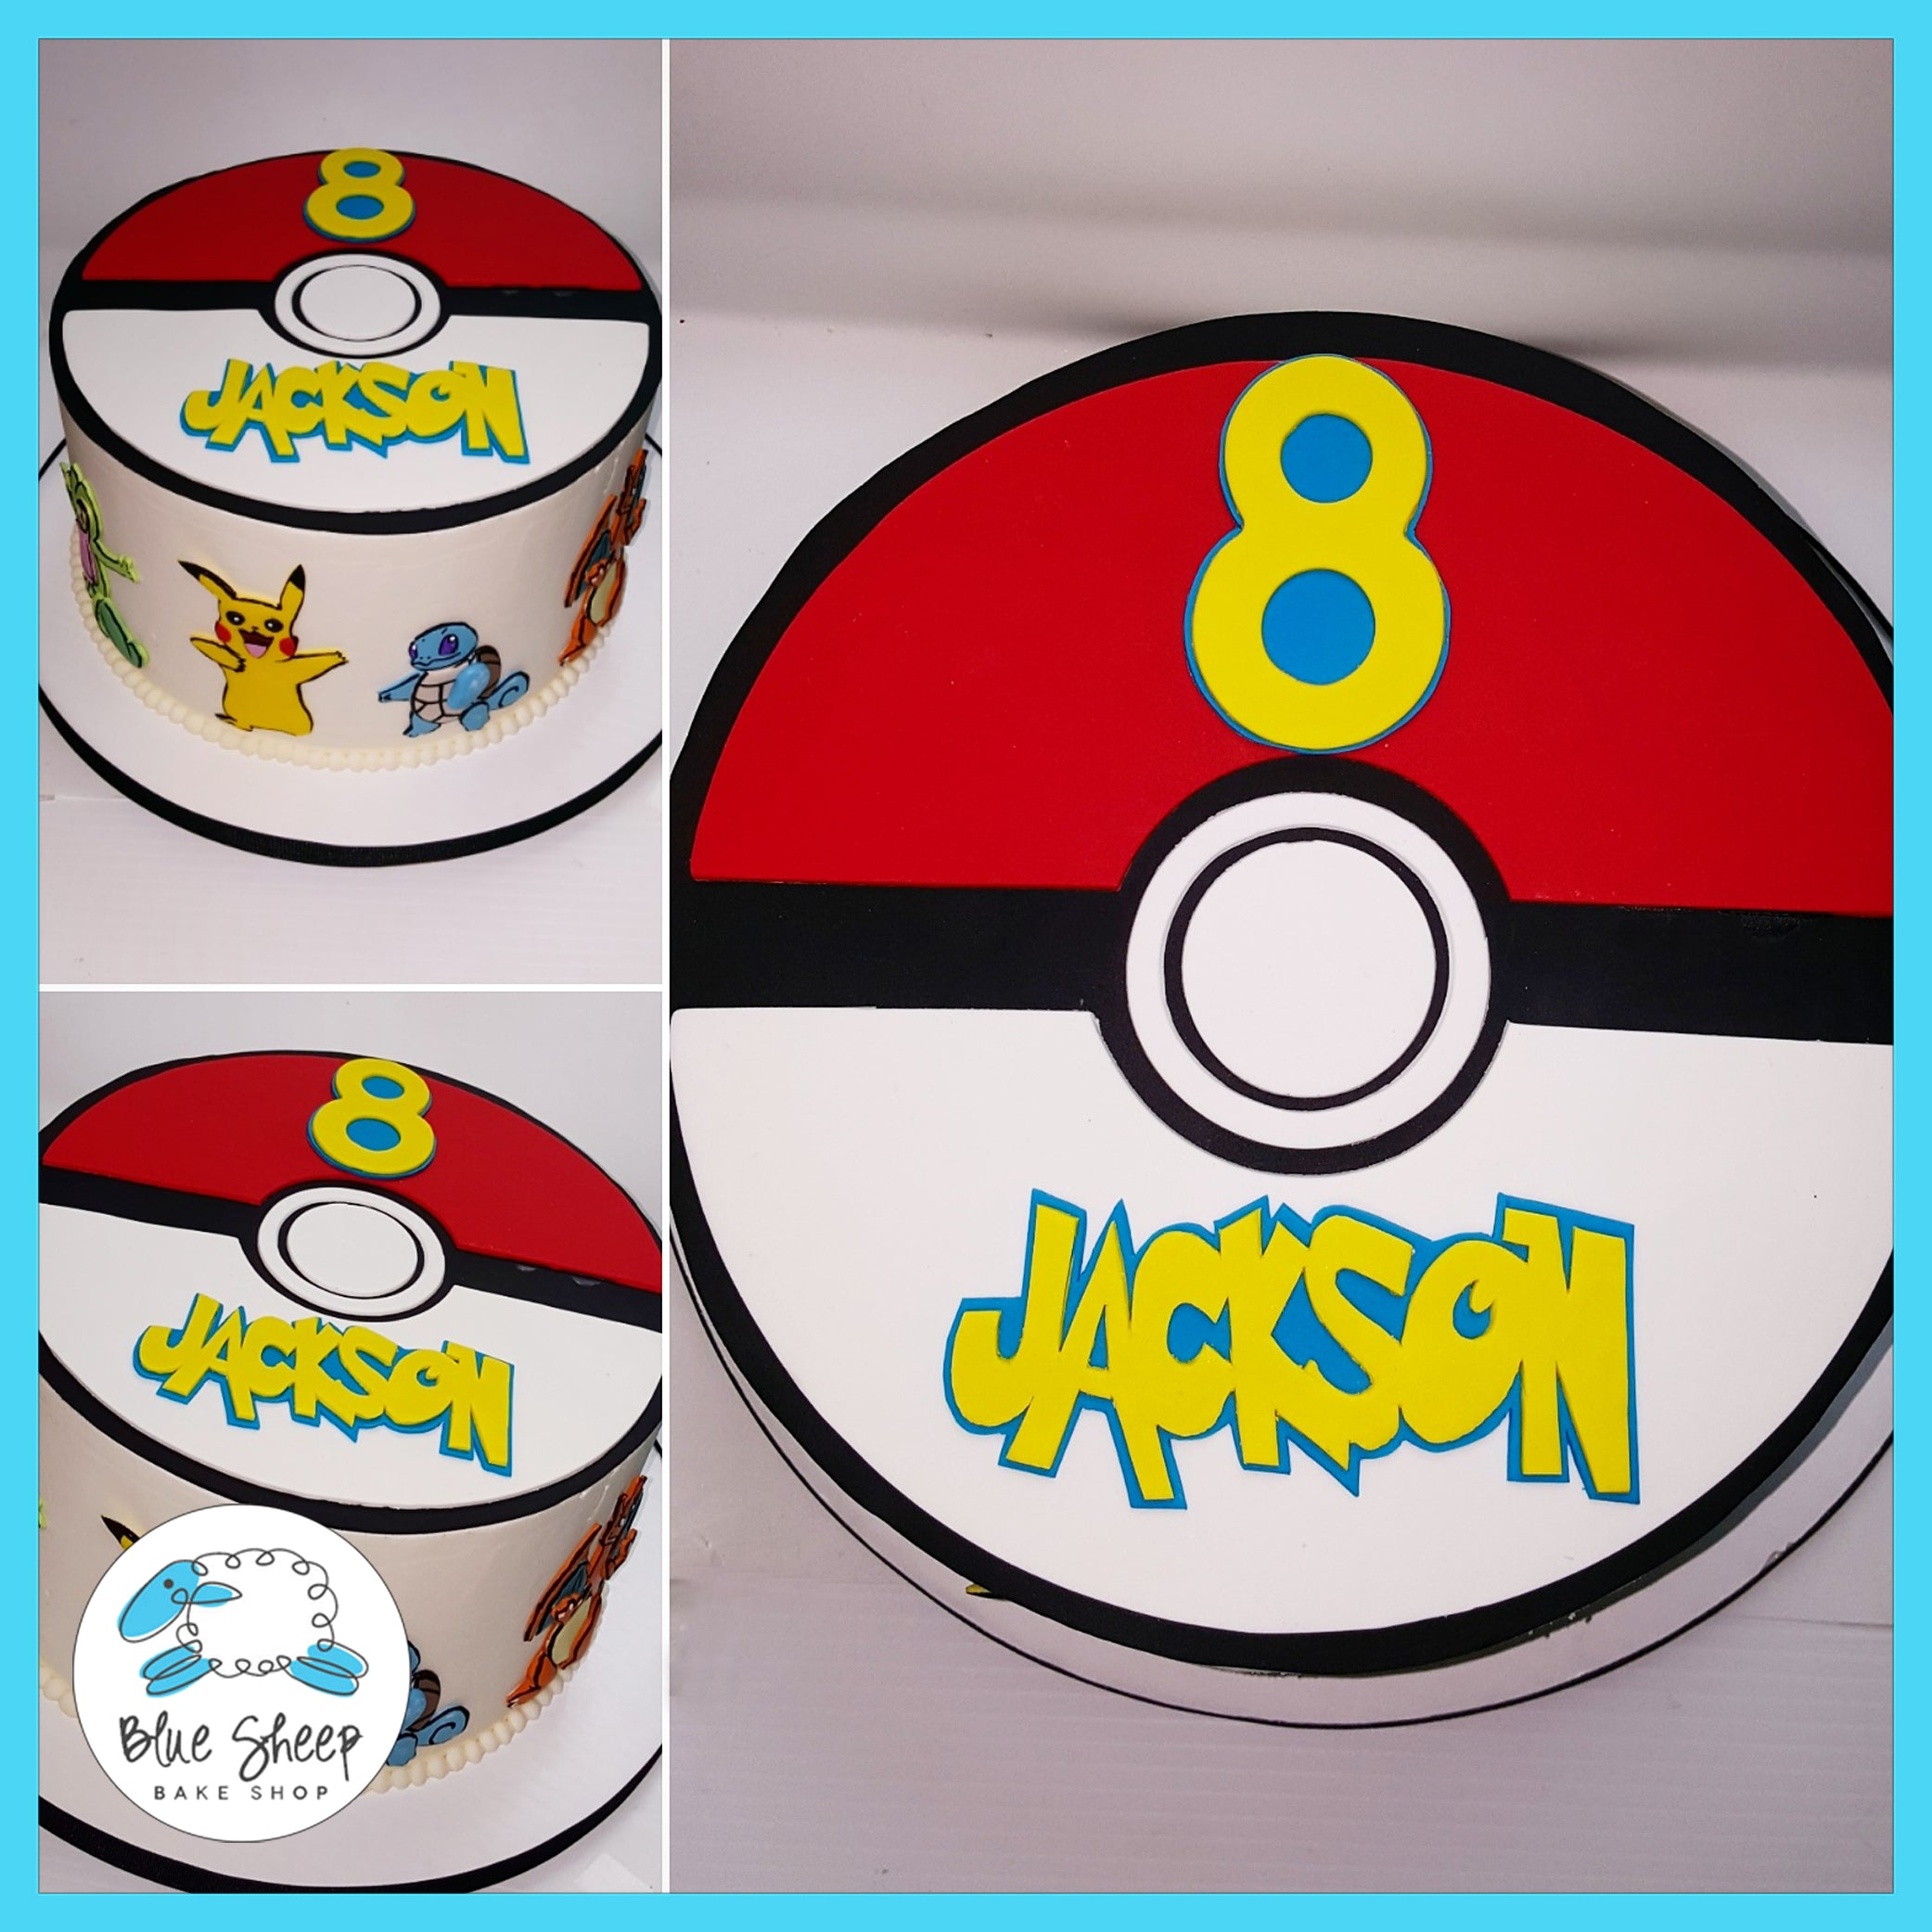 Jacksons Pokemon Birthday Cake Nj Blue Sheep Bake Shop